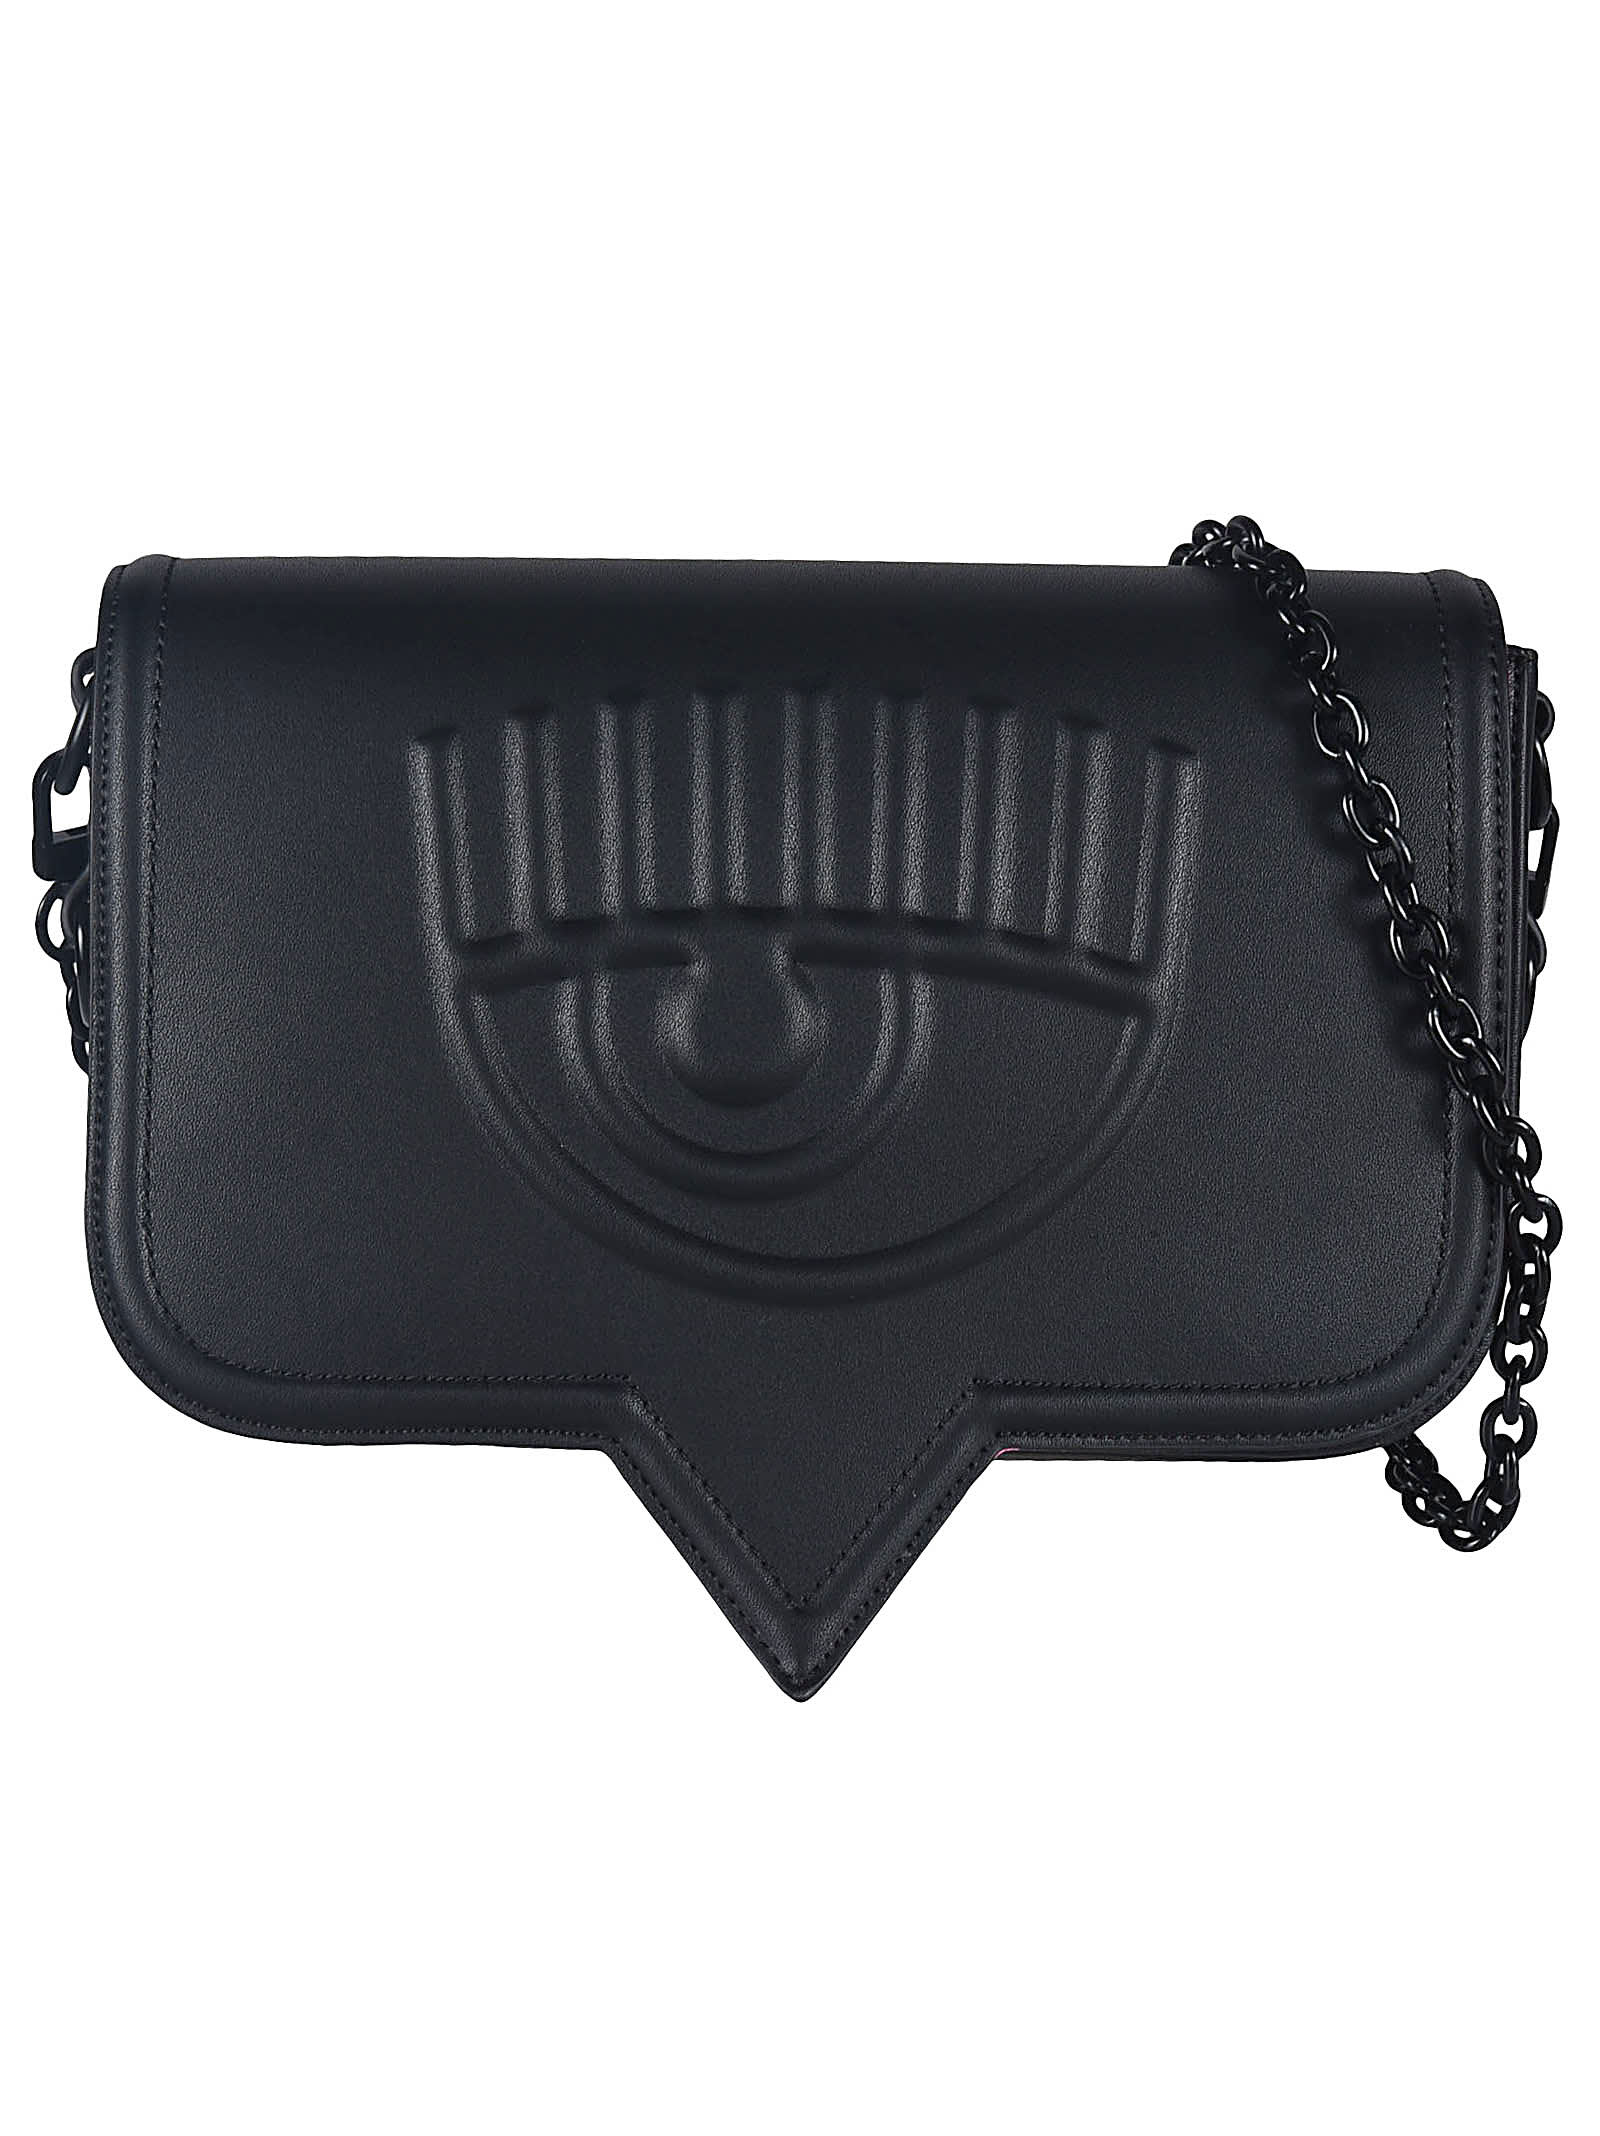 Chiara Ferragni EMBOSSED EYE SHOULDER BAG